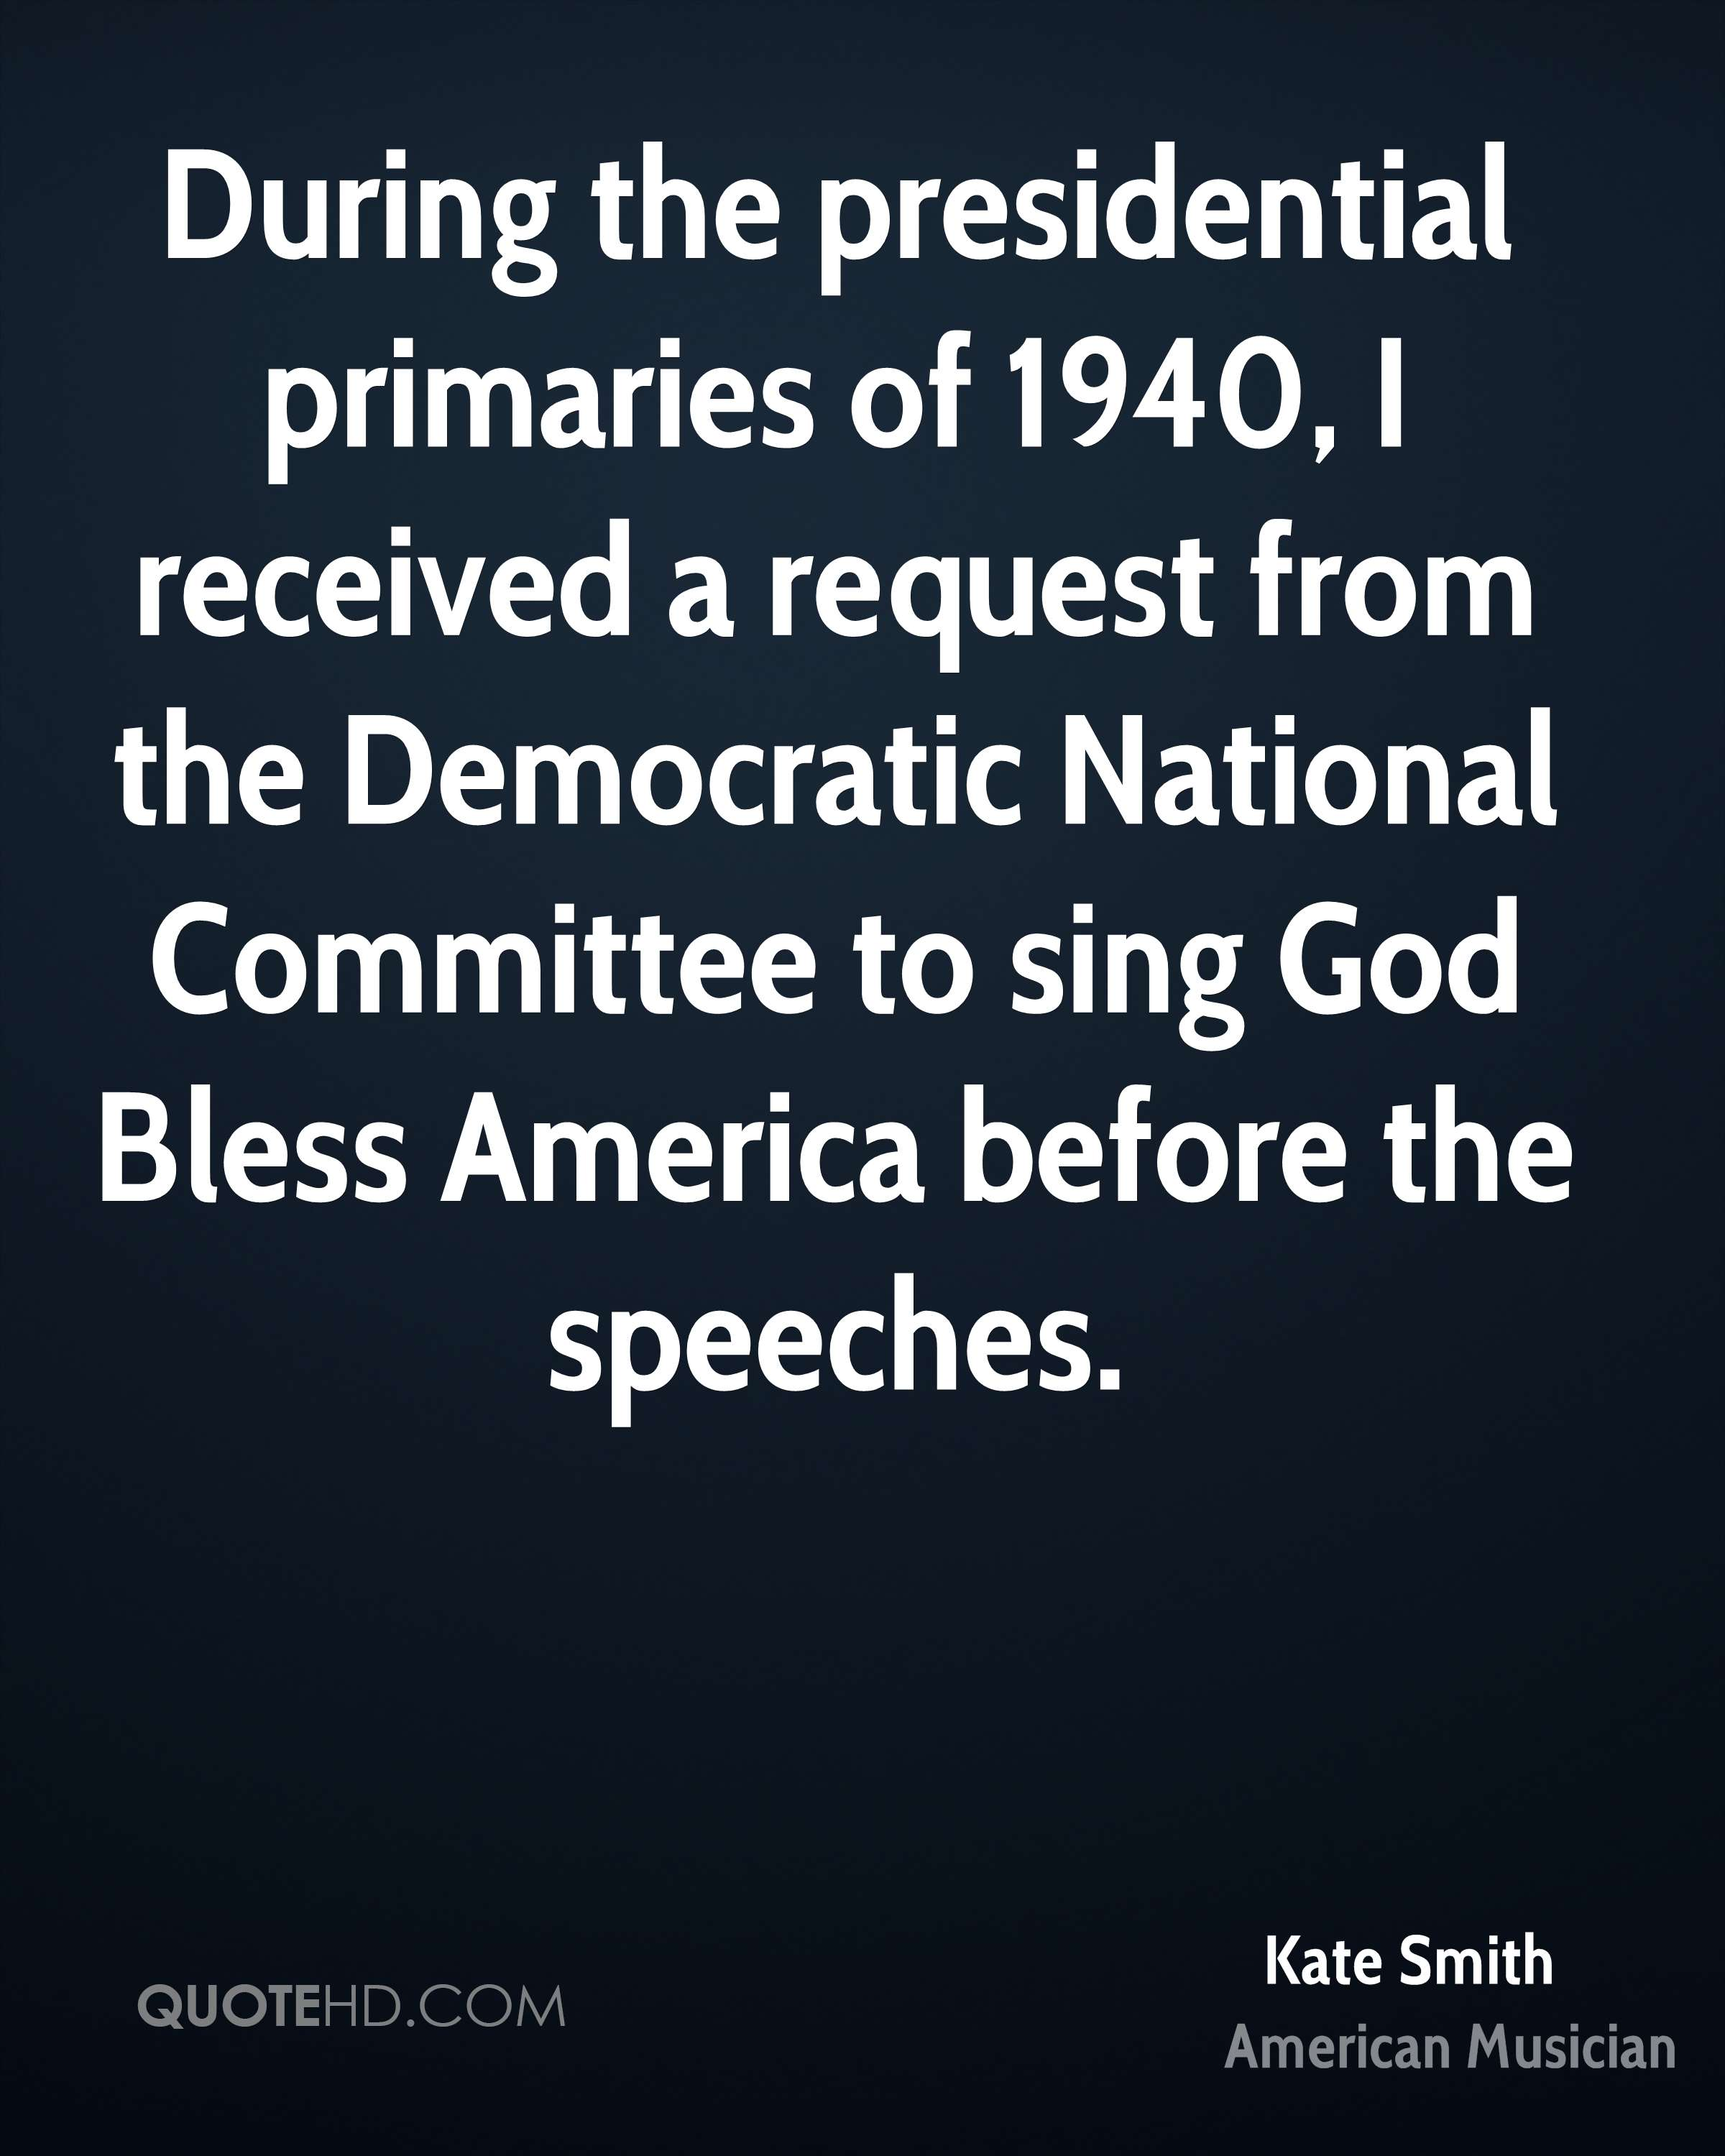 During the presidential primaries of 1940, I received a request from the Democratic National Committee to sing God Bless America before the speeches.